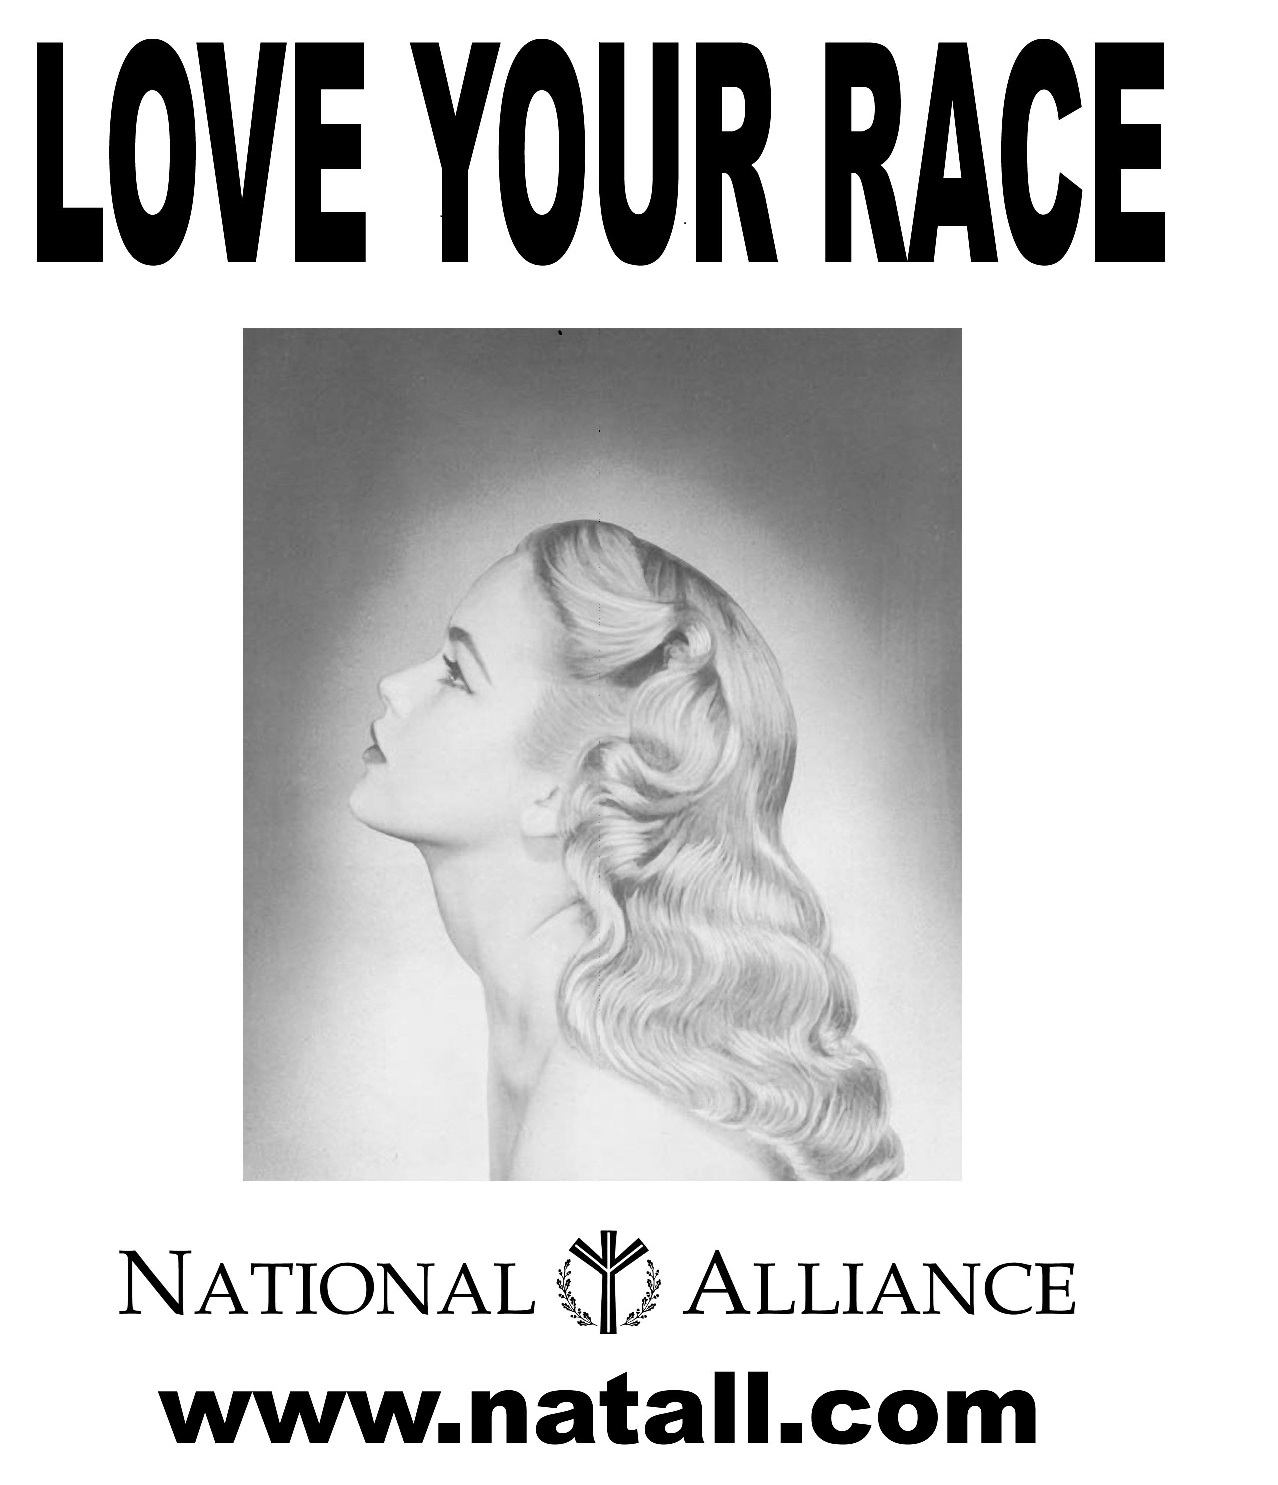 Love Your Race